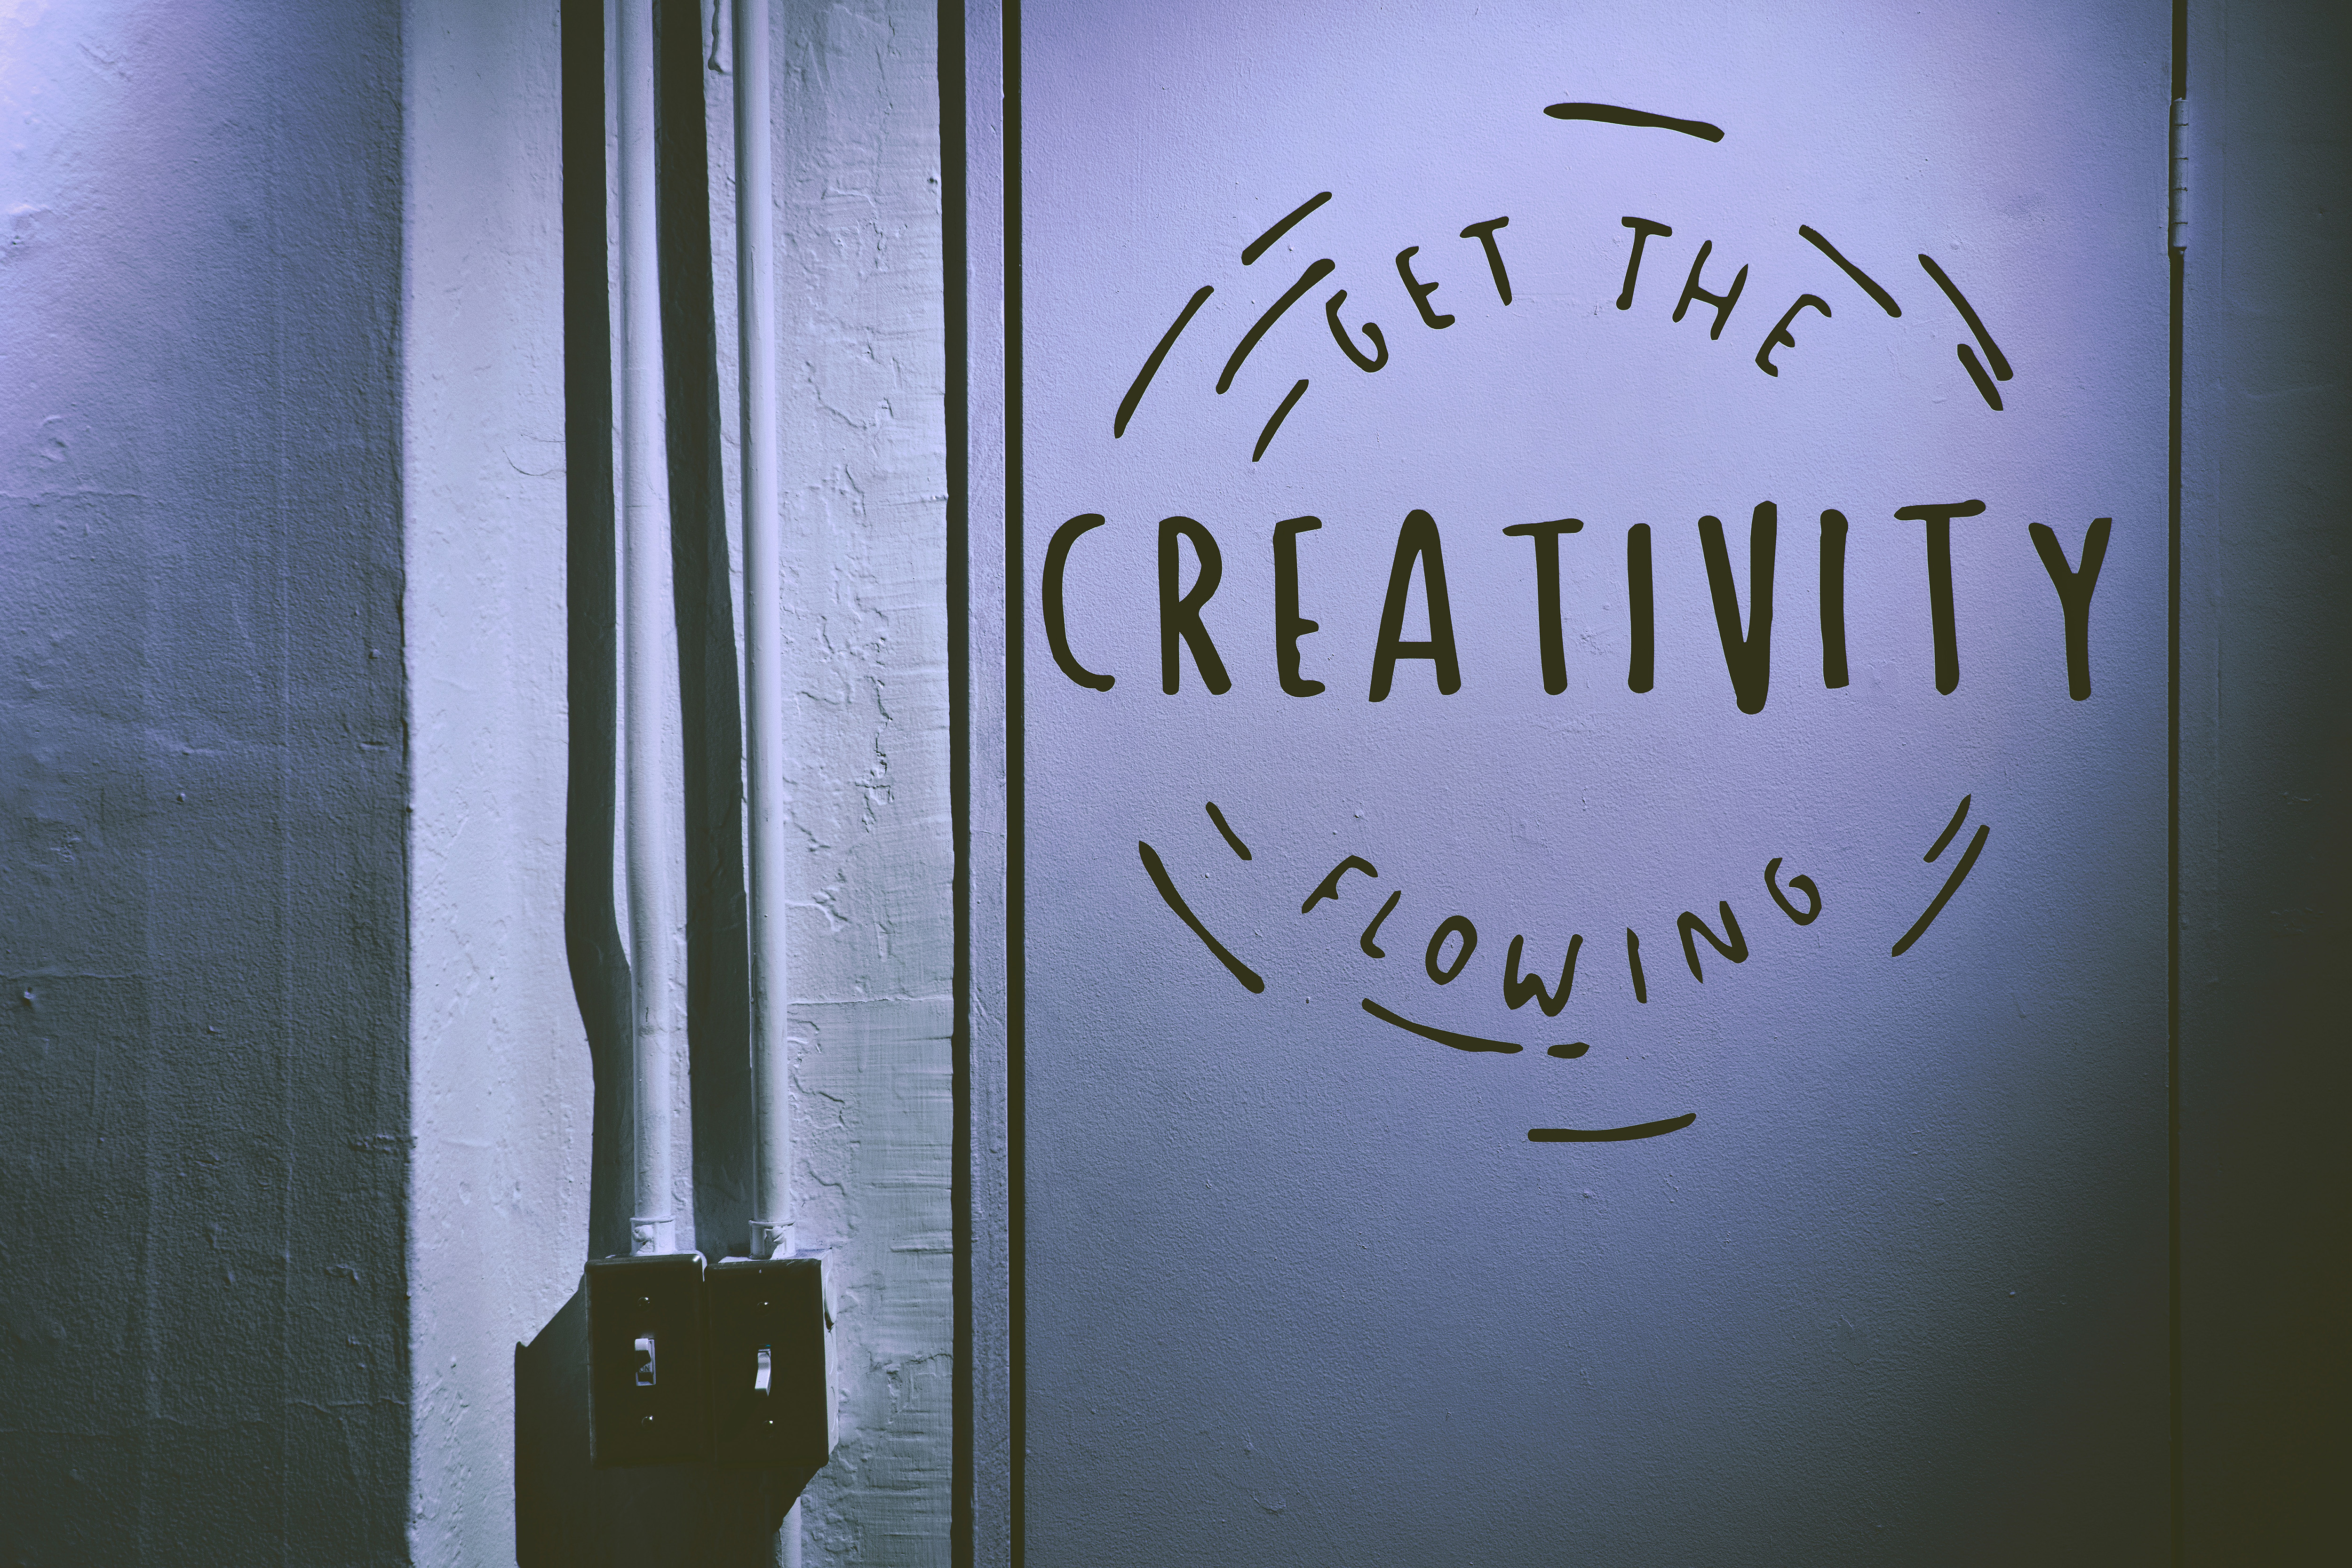 Photo illustration sayin 'get the creativity flowing'